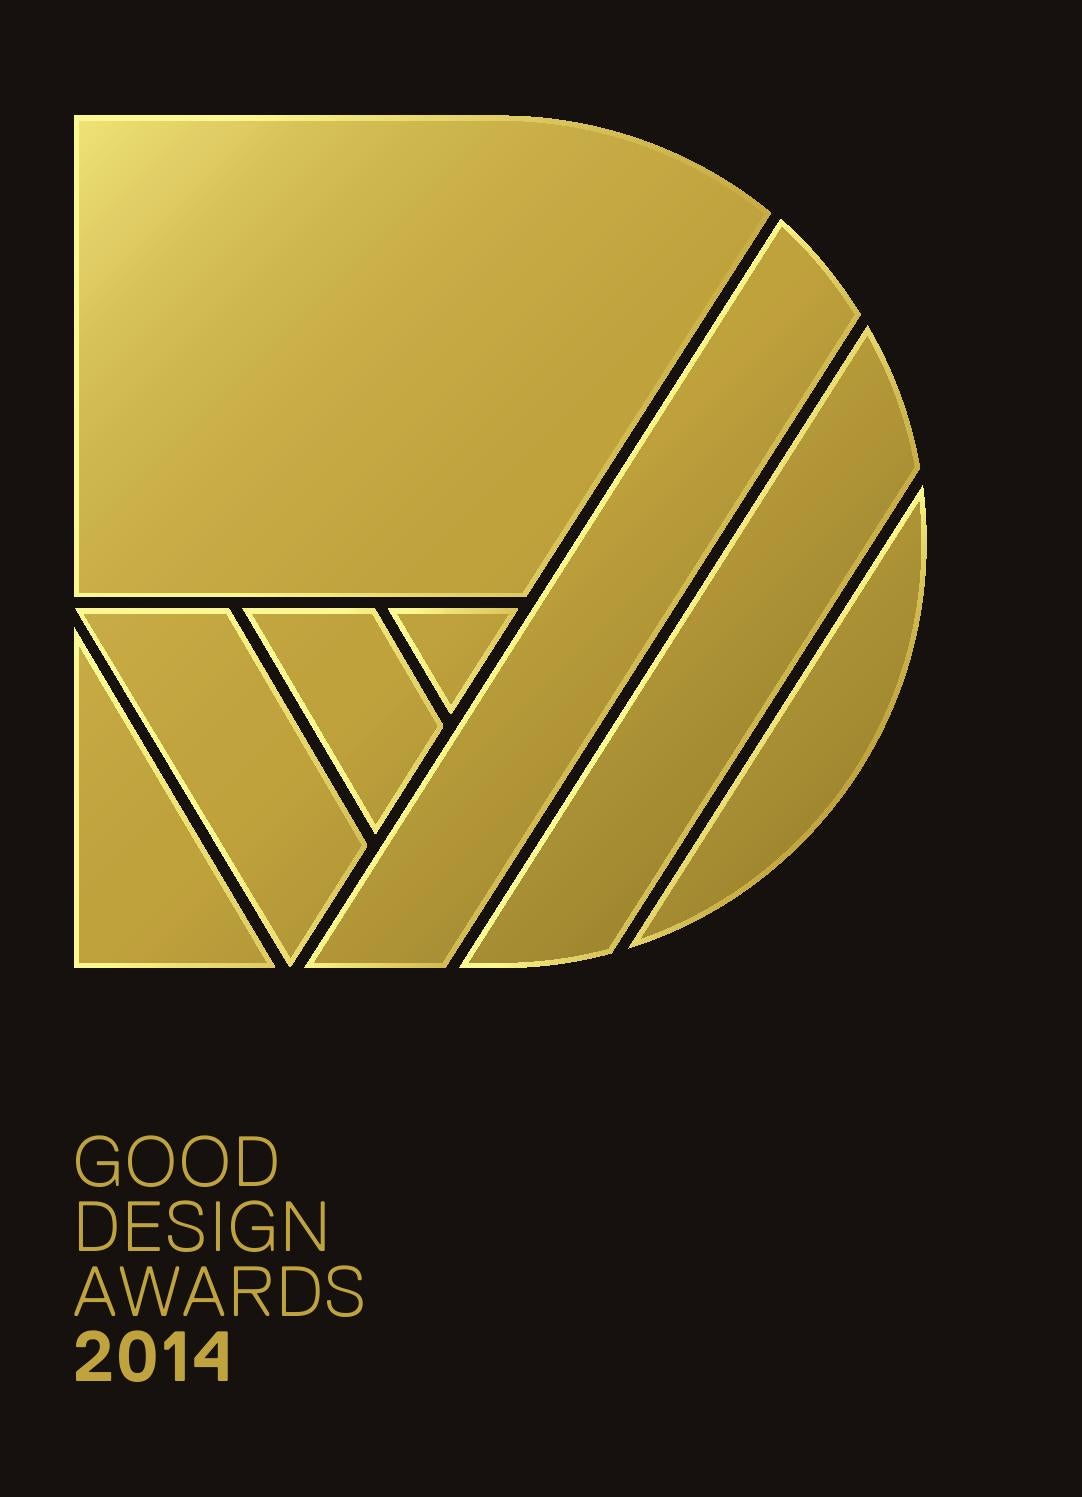 good design awards yearbook 2014 by good design australia issuu. Black Bedroom Furniture Sets. Home Design Ideas